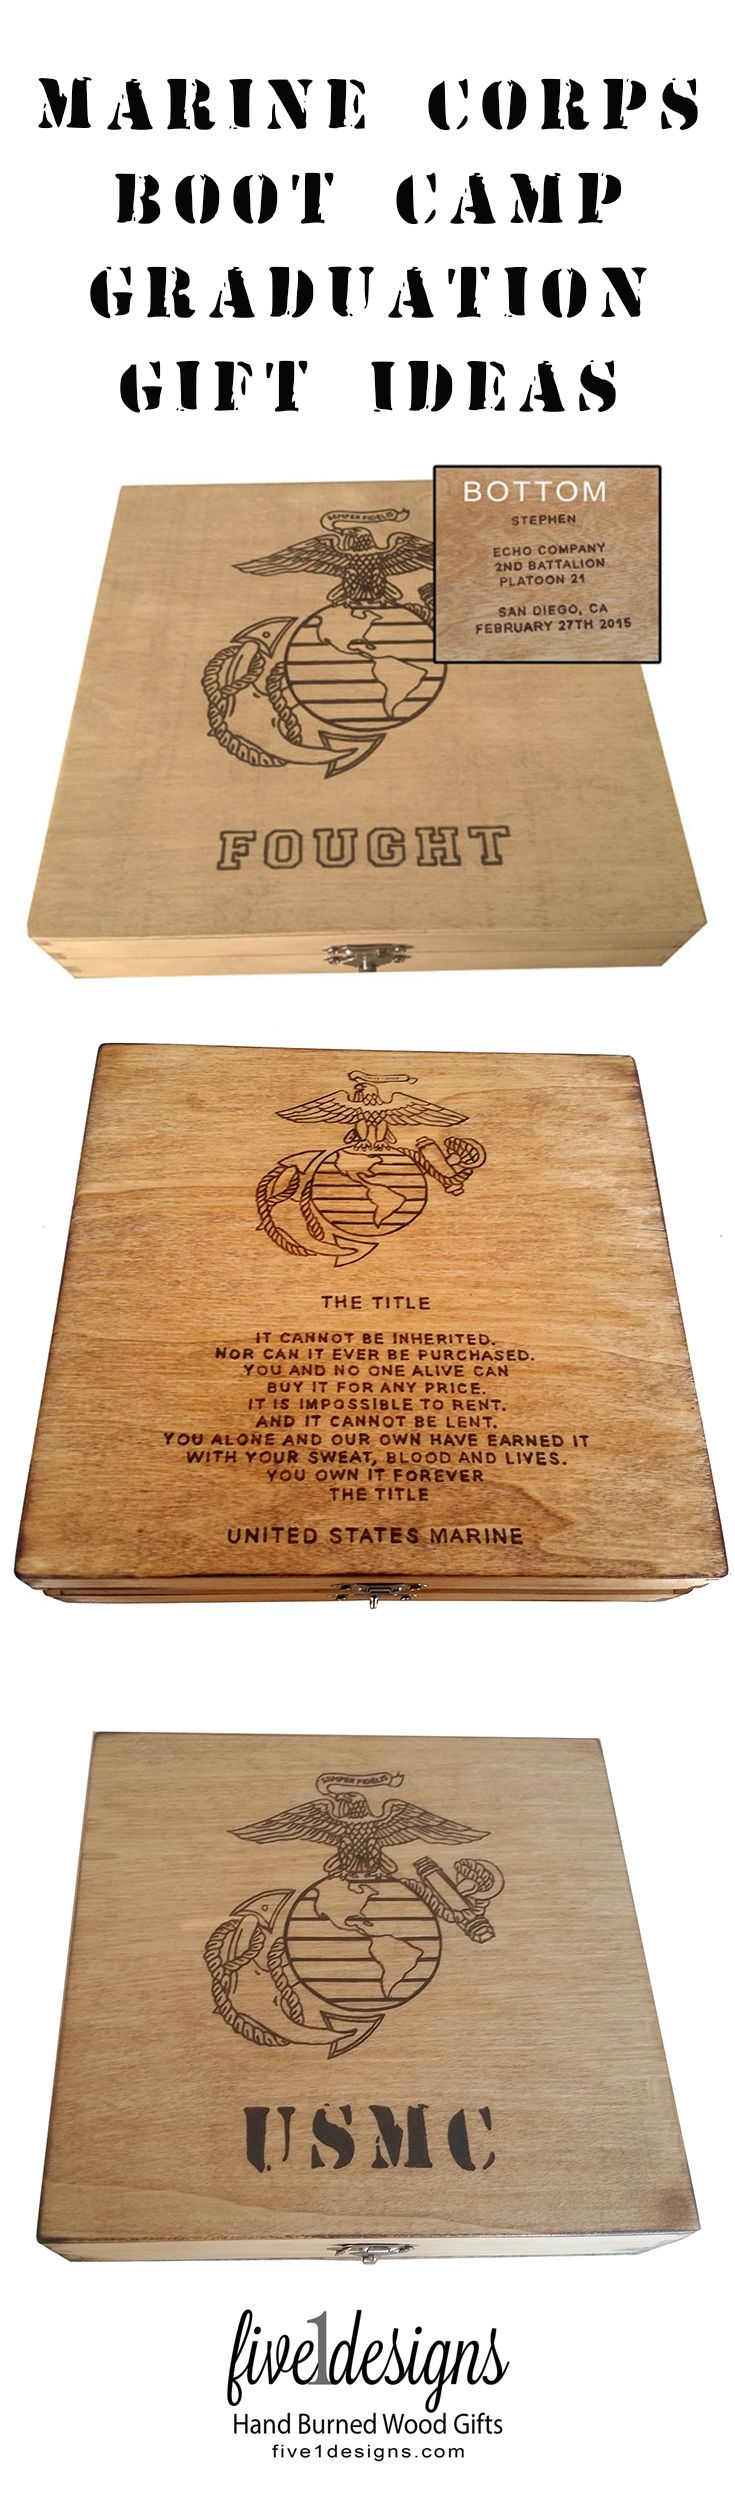 Marine Corps boot camp graduation keepsake boxes. Each box has the design burned into the box by hand making it a unique one of a kind gift.